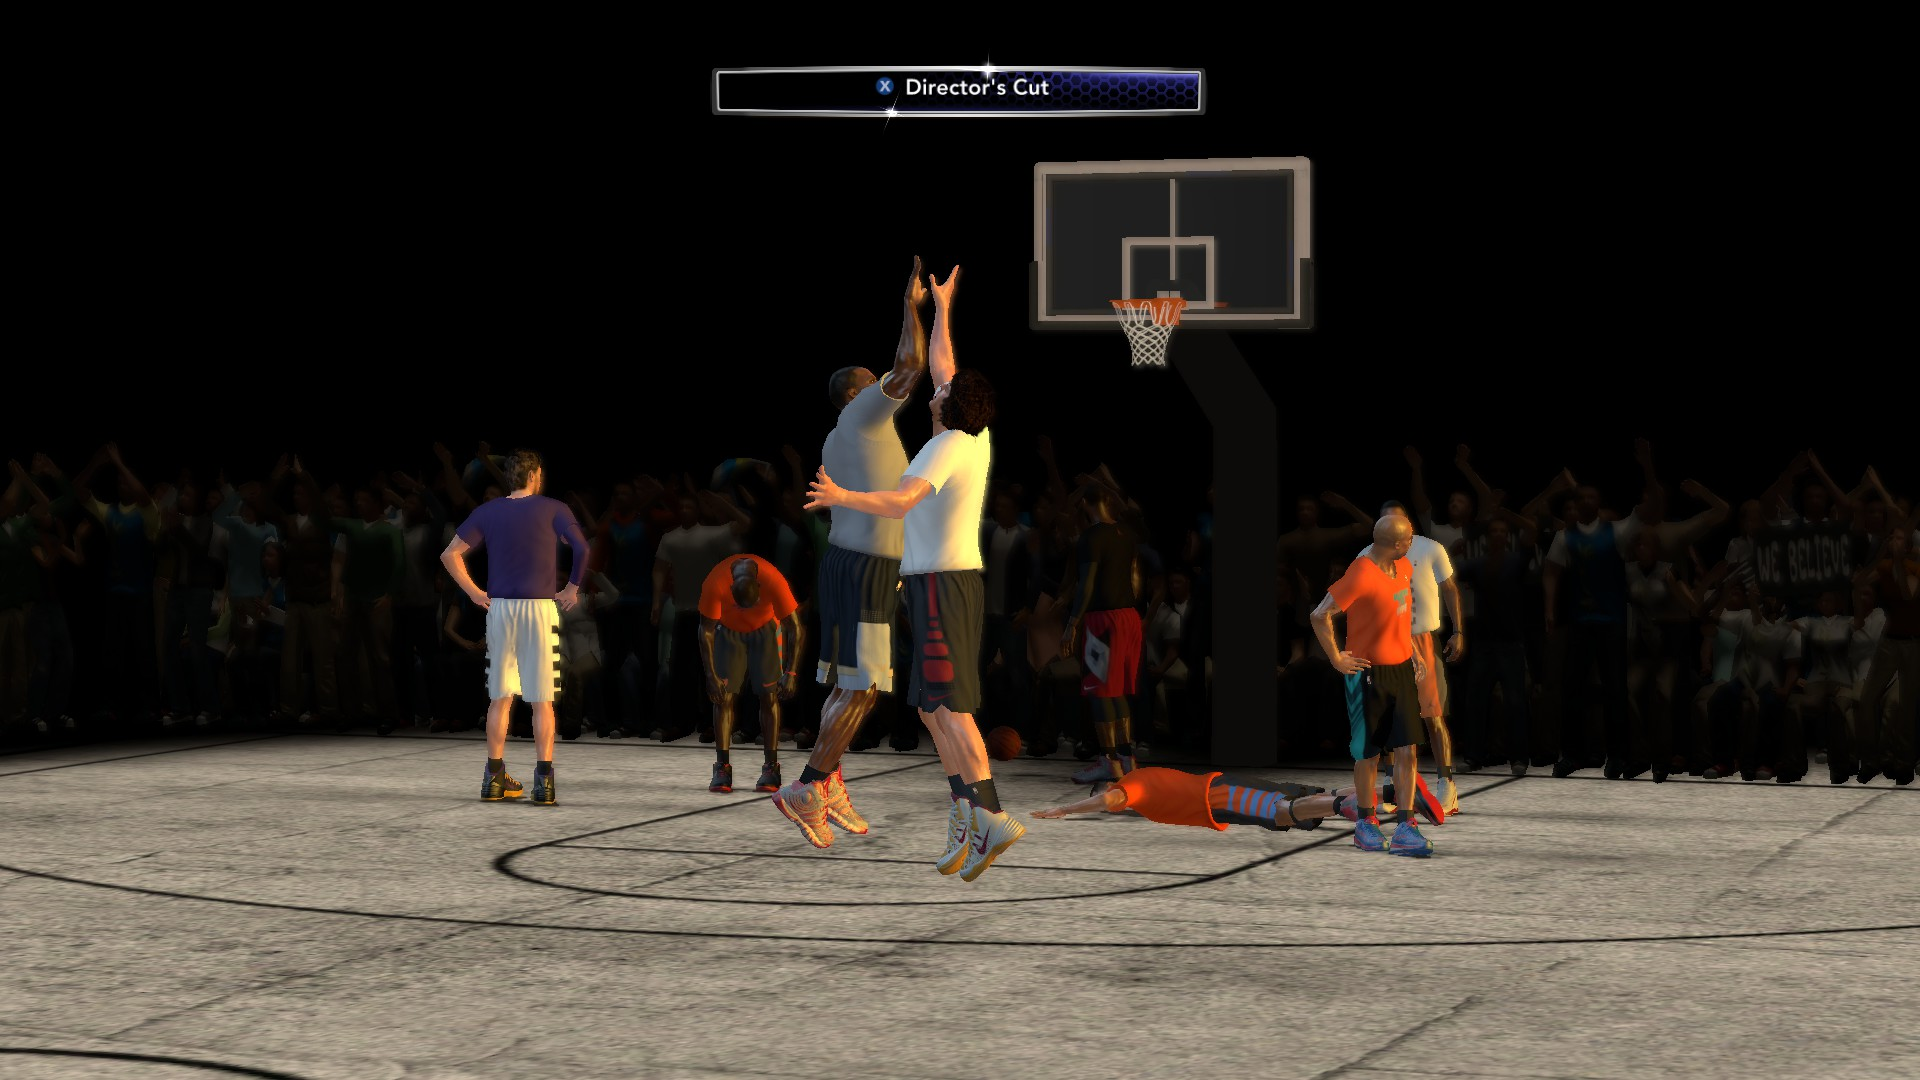 Blacktop Revitalization High Five NBA 2K14